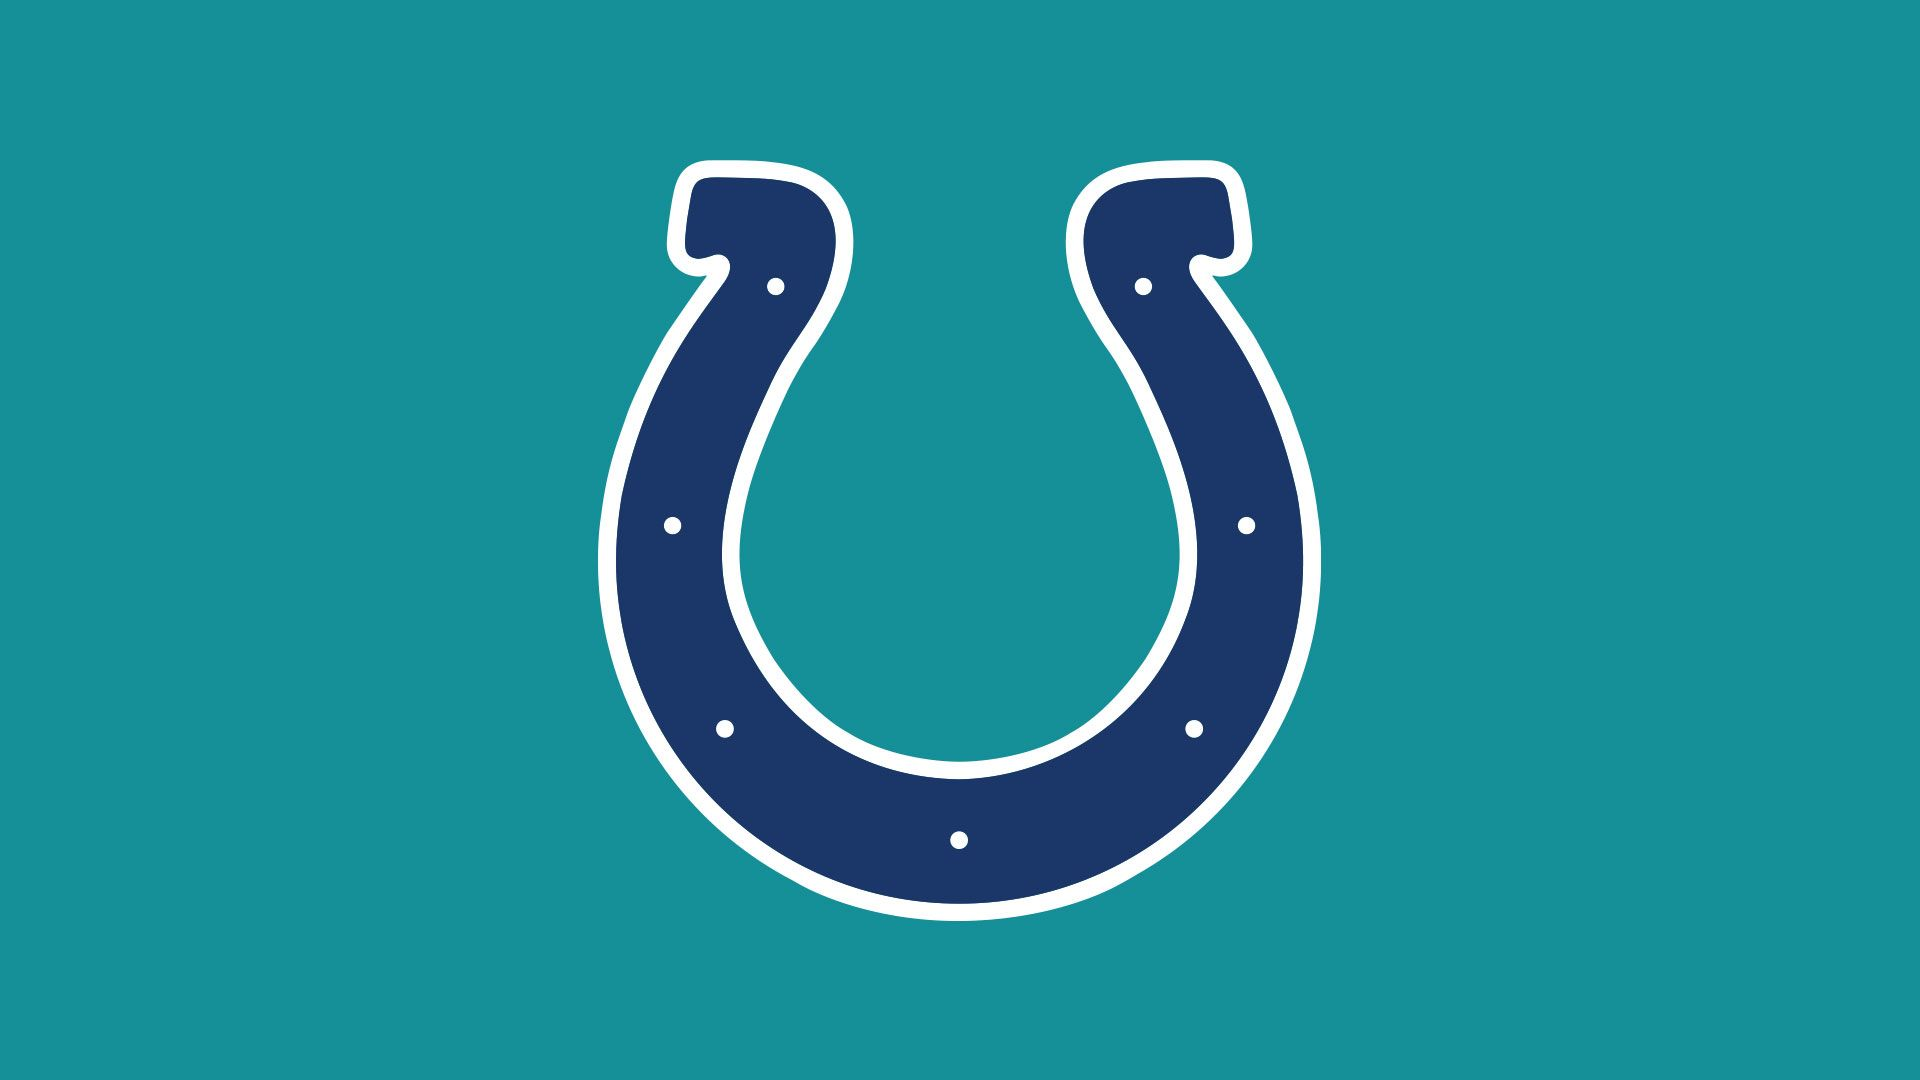 2021 Home Opponent: Indianapolis Colts